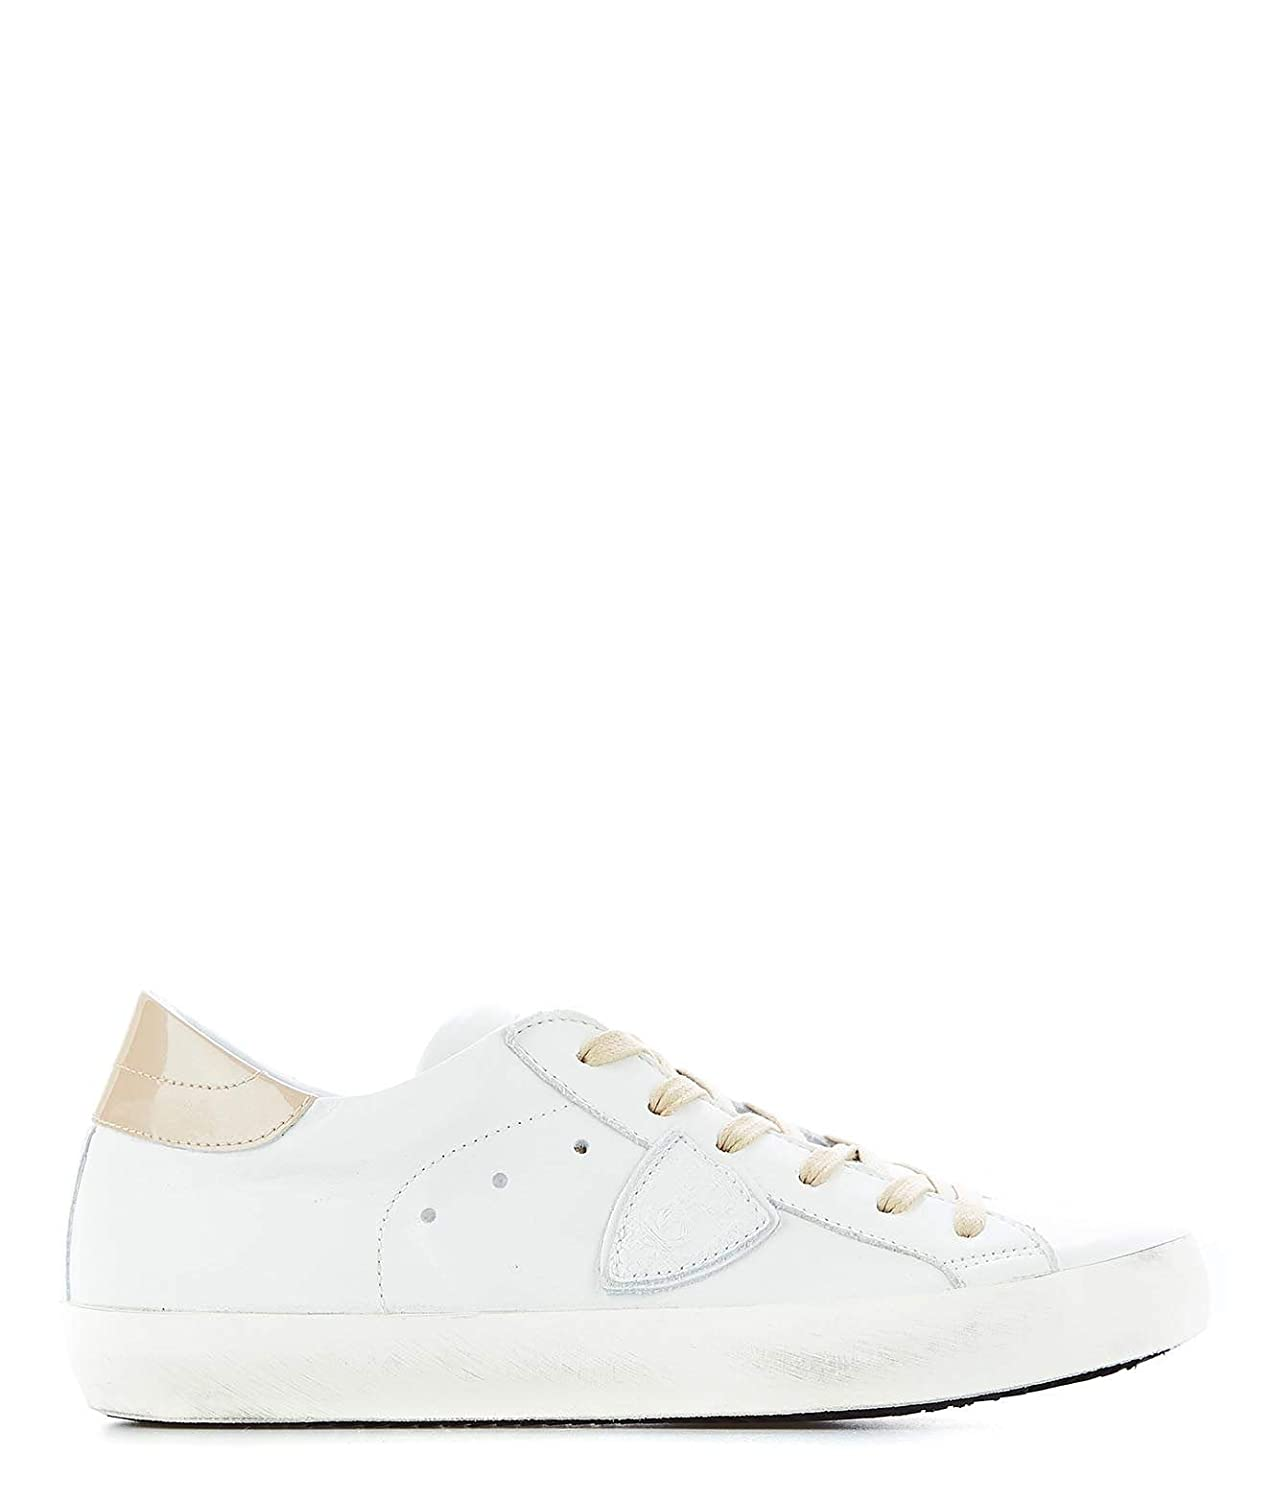 - PHILIPPE MODEL Women's CLLD1004 White Leather Sneakers